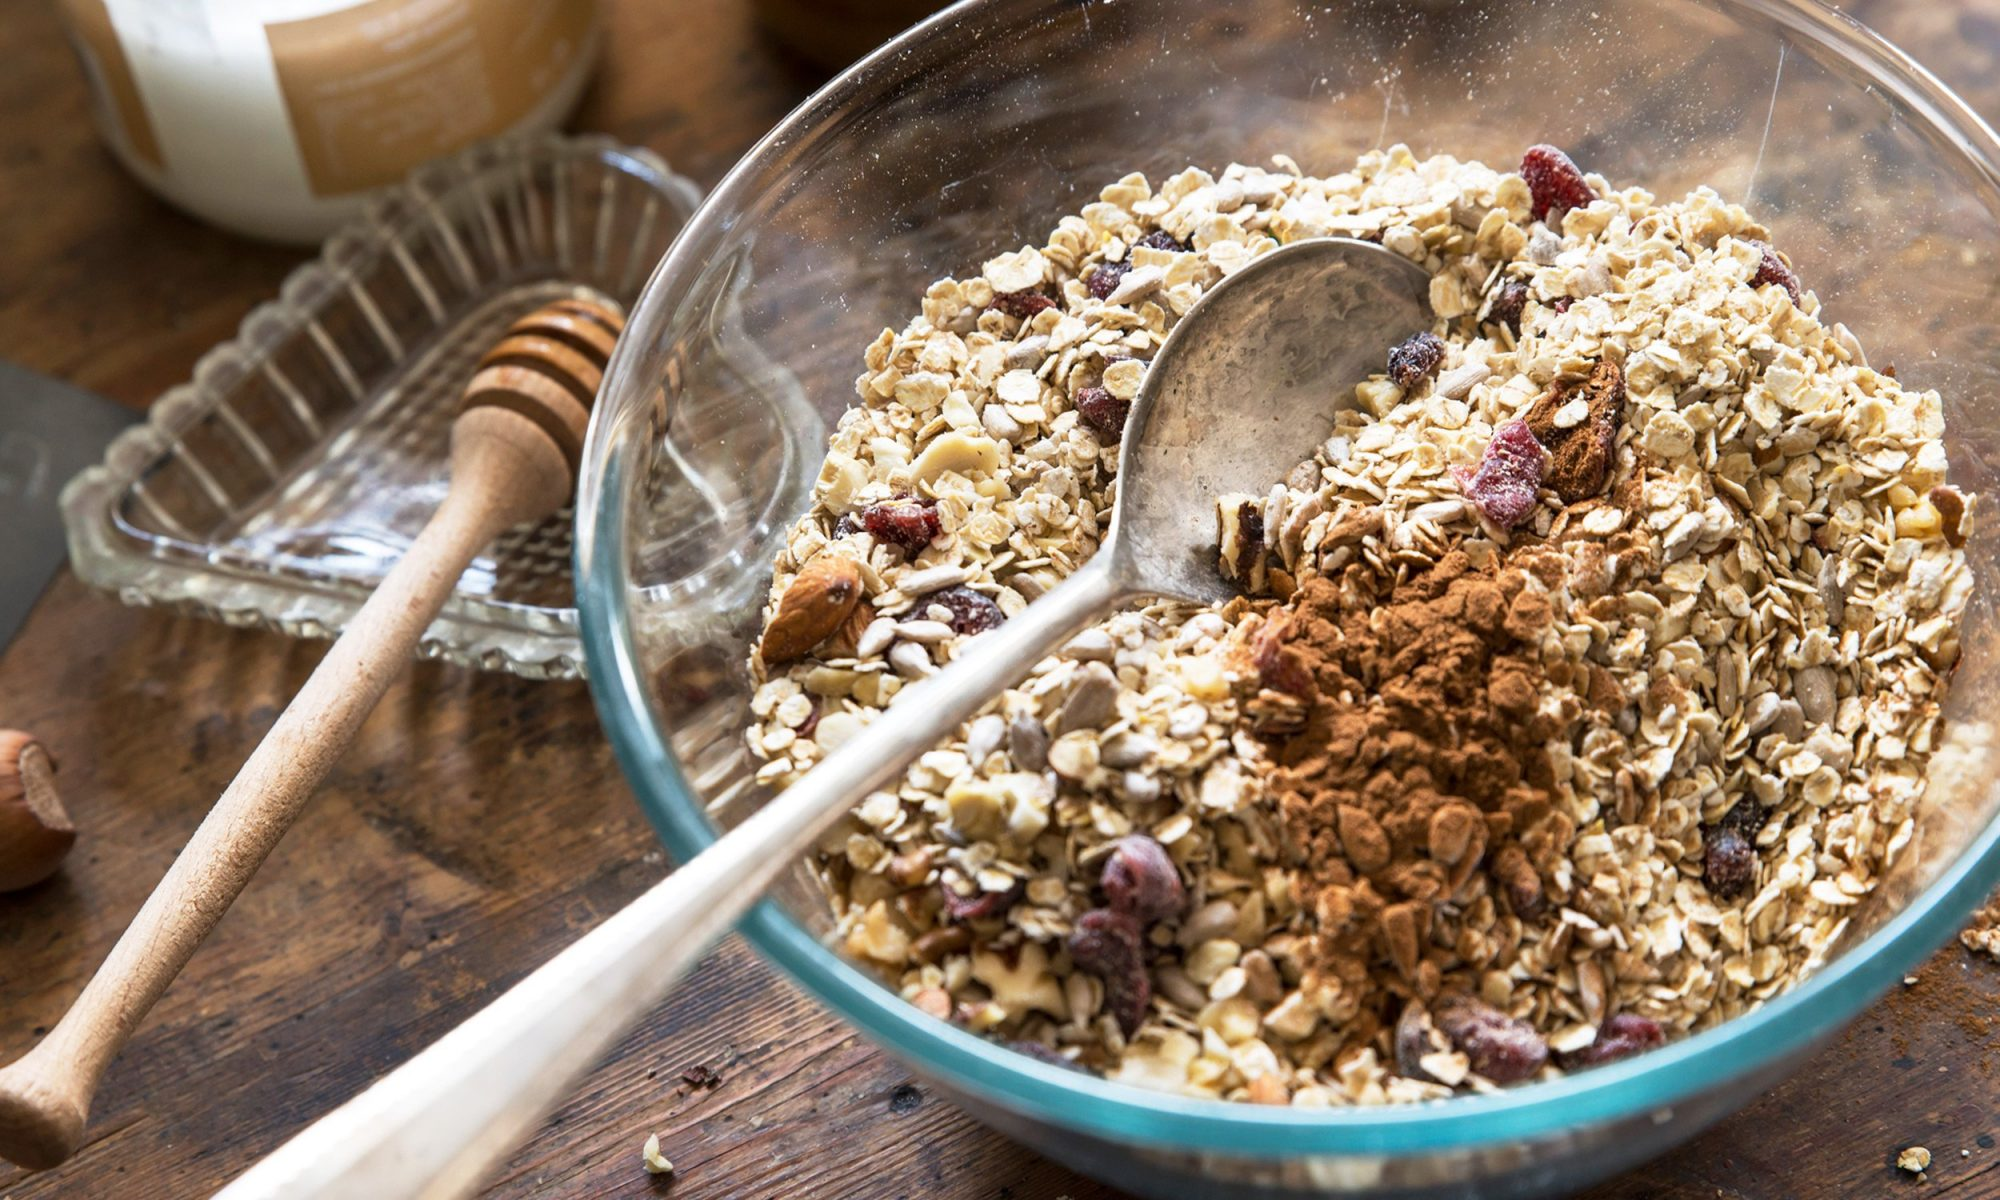 EC: How to Make Granola in a Slow Cooker